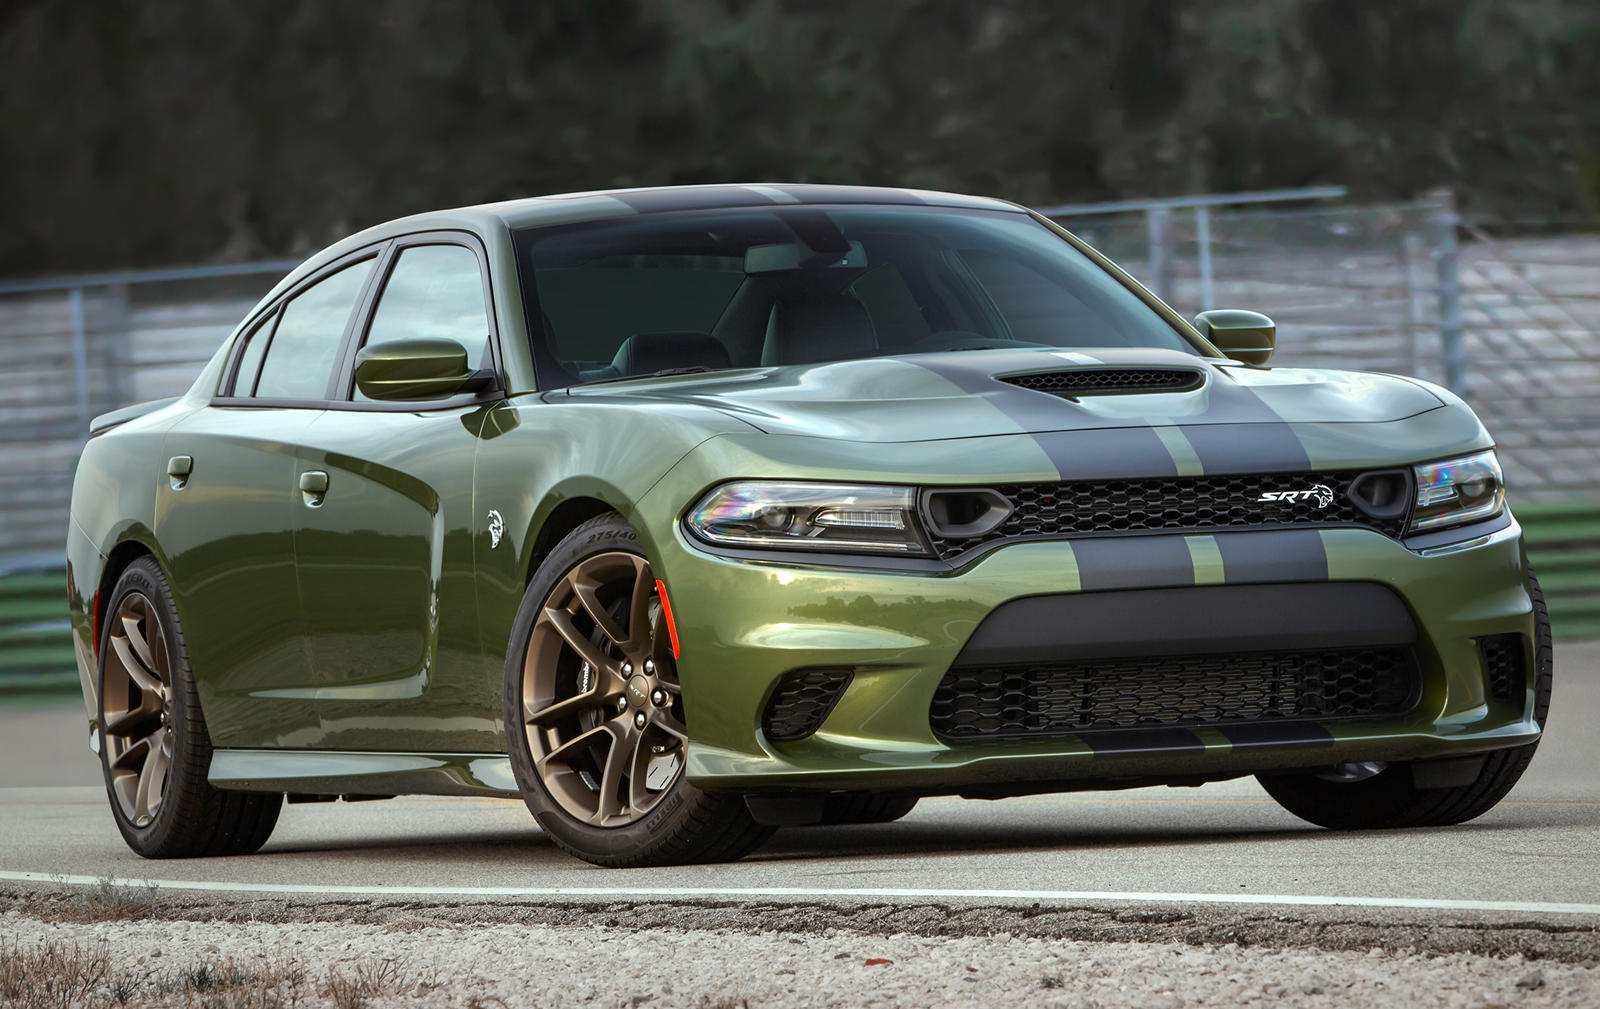 58 The Best 2020 Dodge Challenger Hellcat Pricing